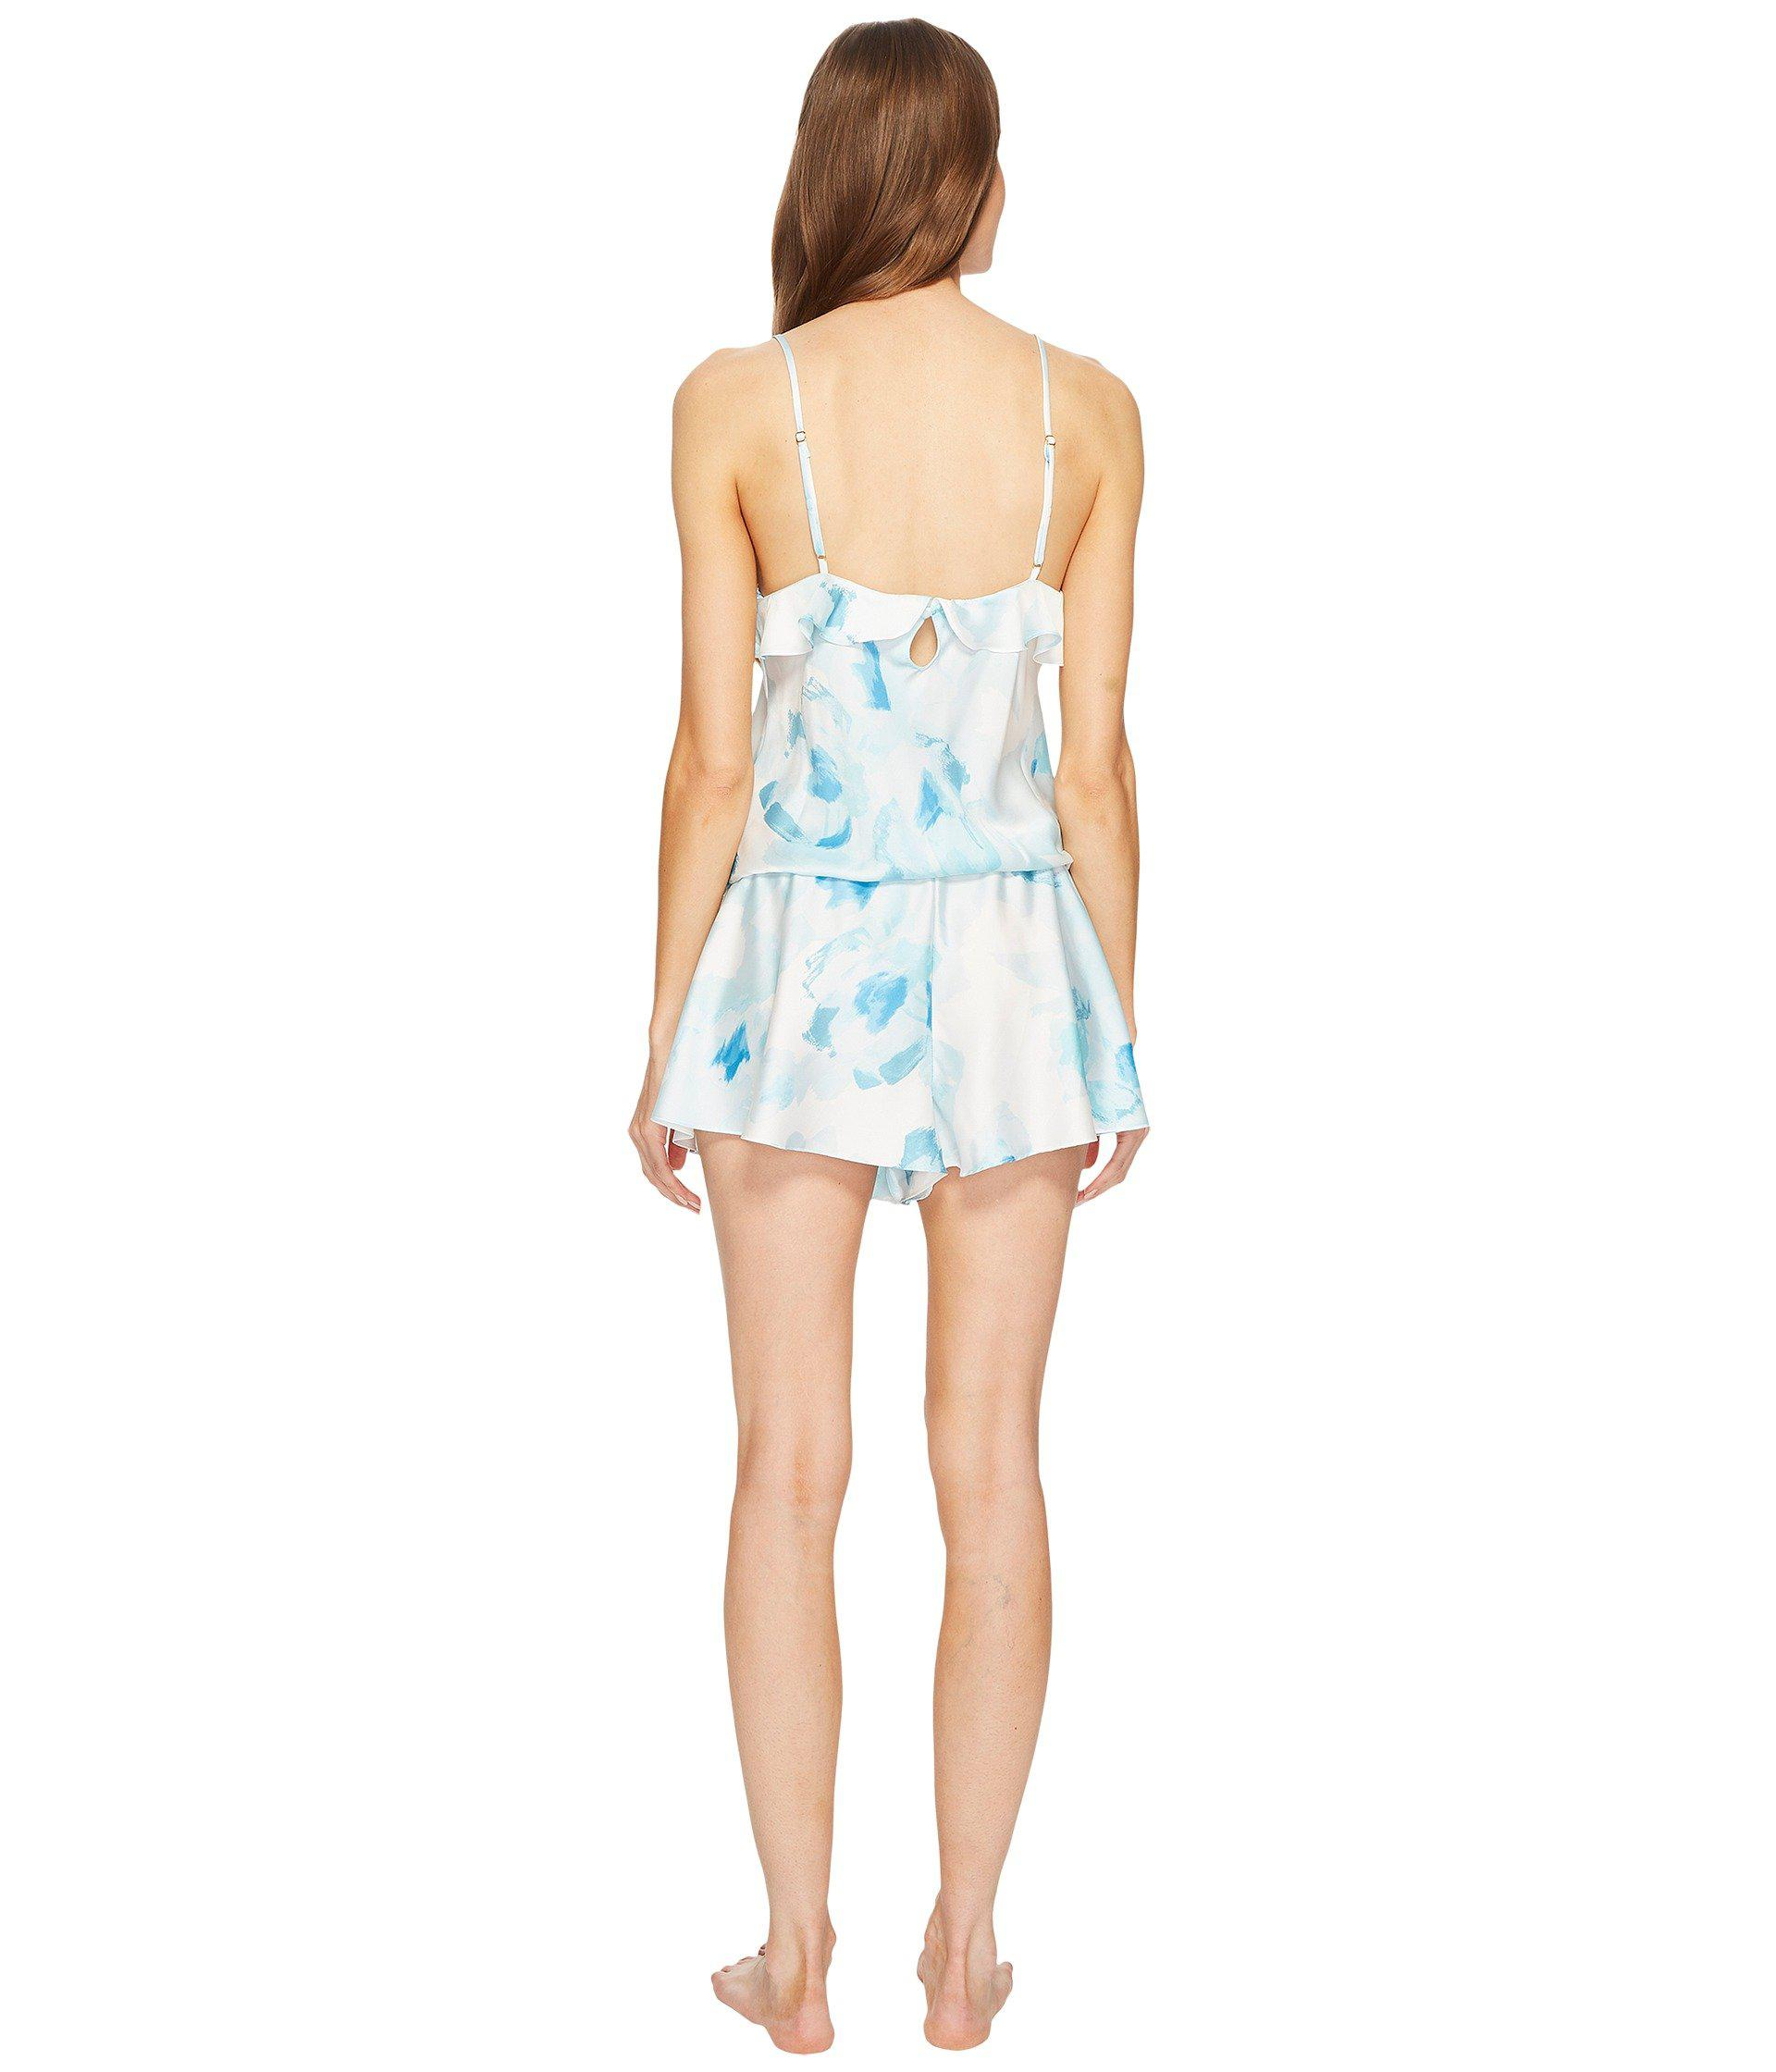 c151ae5ba42f Lyst - Kate Spade Moroccan Rose Satin Romper in Blue - Save 65%